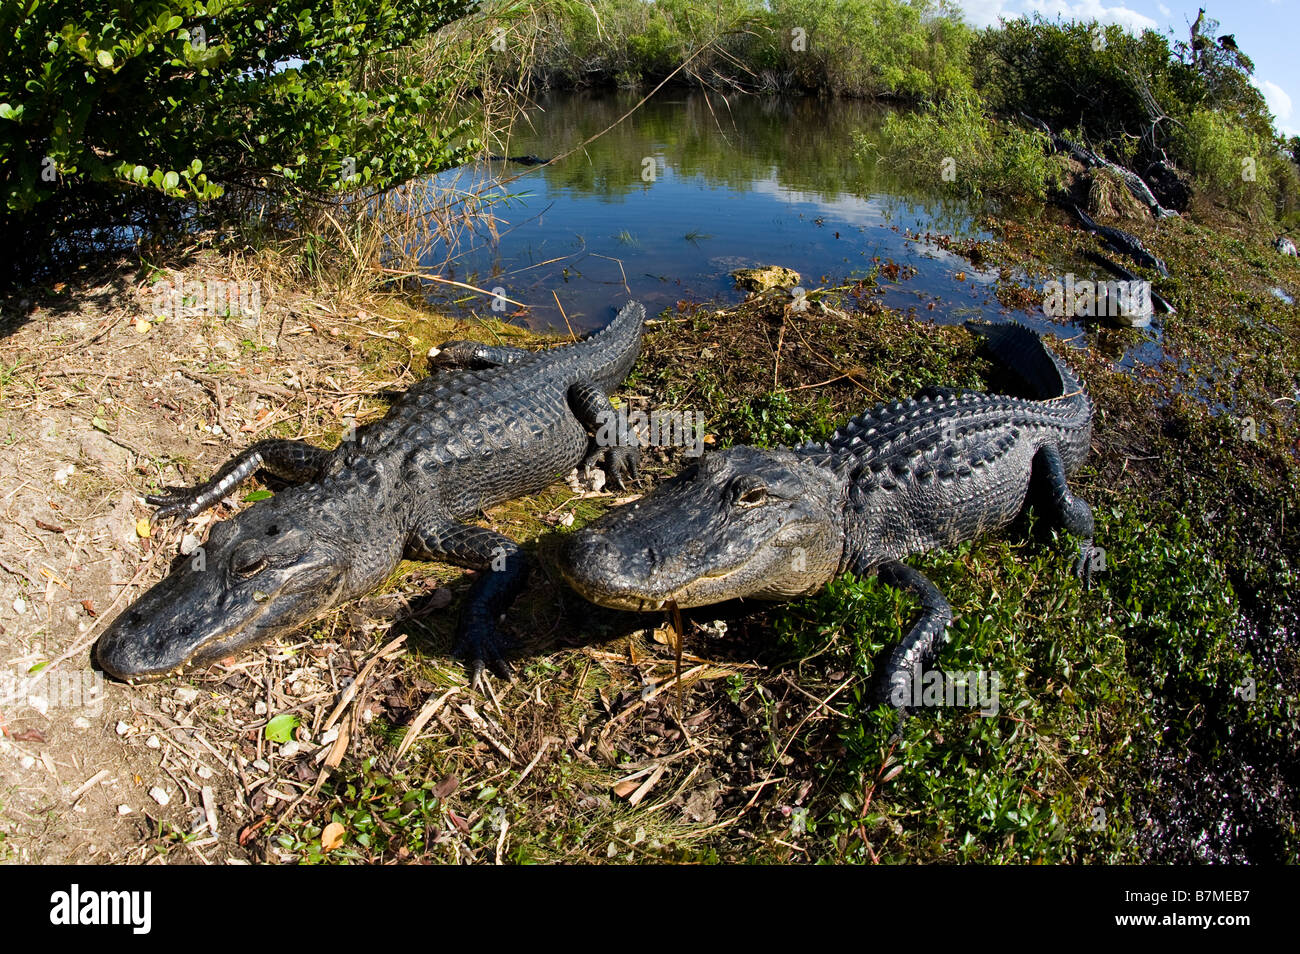 American Alligator Alligator mississippiensis basking in the sun in Everglades National Park Florida - Stock Image